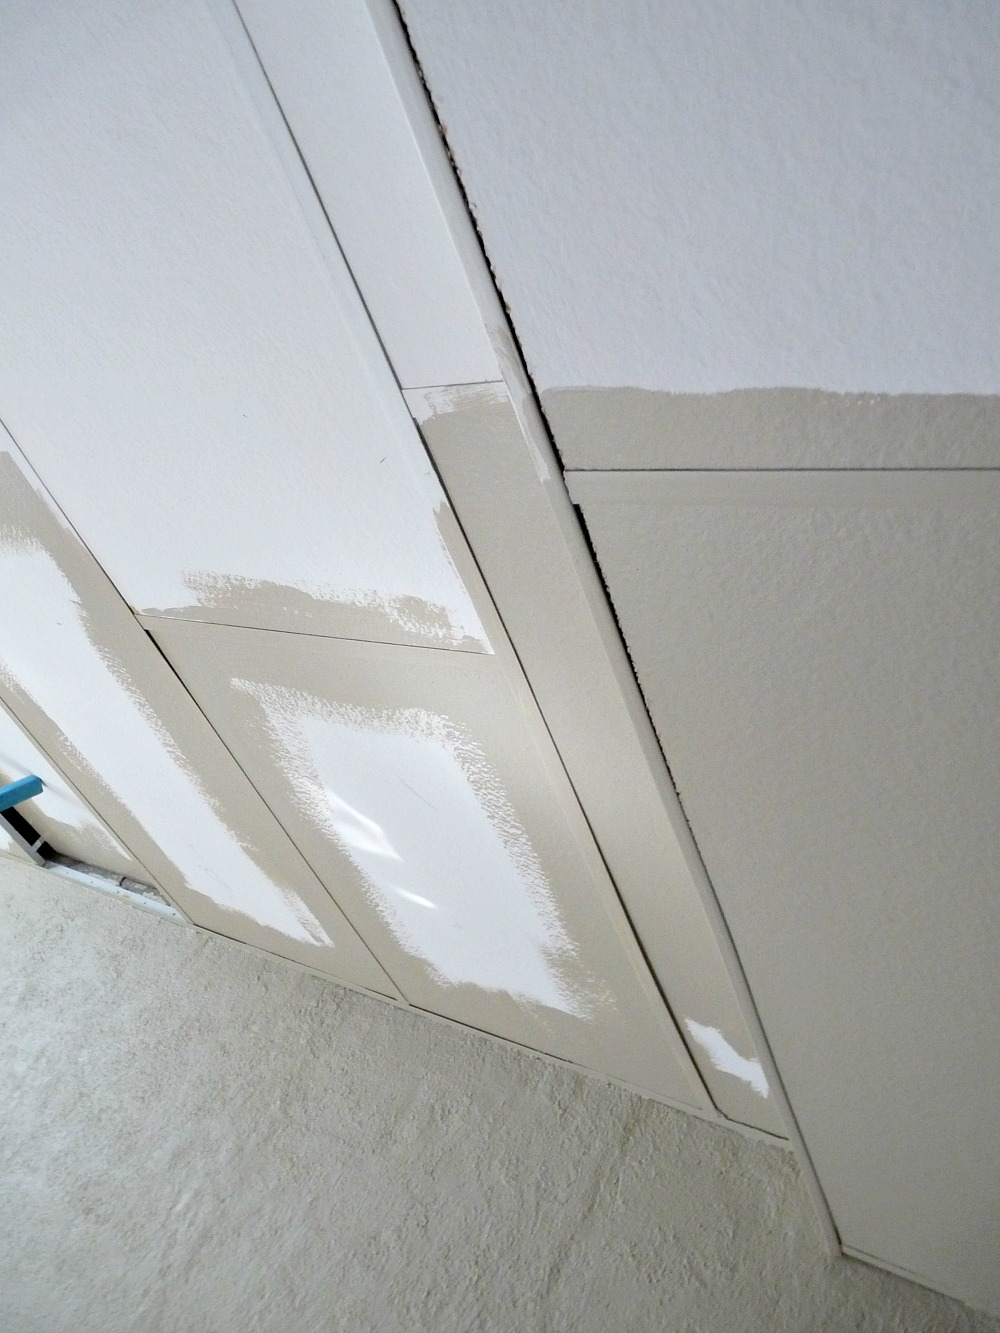 Painting hanging ceiling tiles energywarden painting hanging ceiling tiles www energywarden net dailygadgetfo Gallery